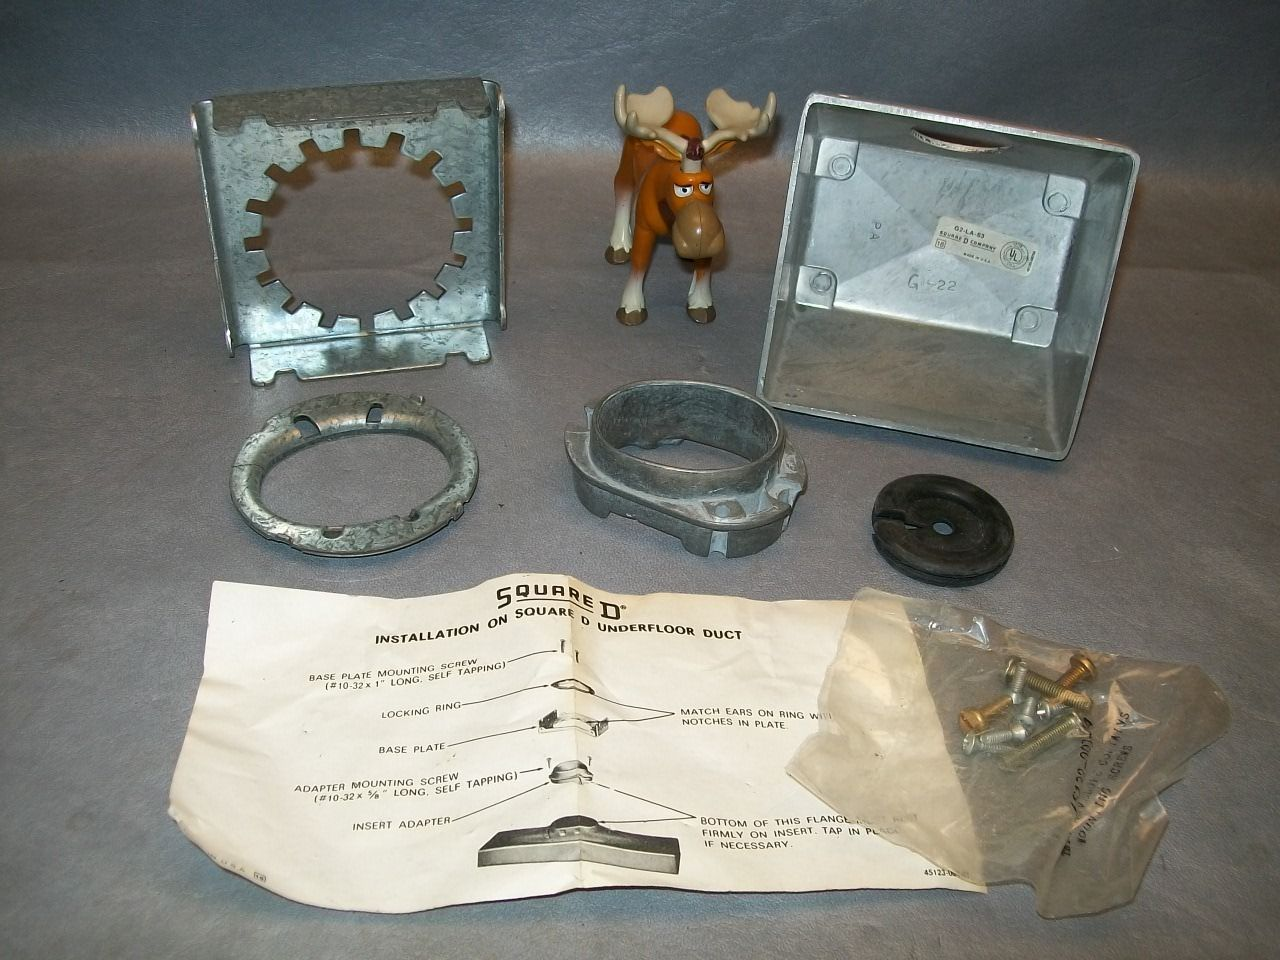 "Primary image for Square D G2-LA-S3 Service Fitting Housing Kit 1"" Bushed Opening"